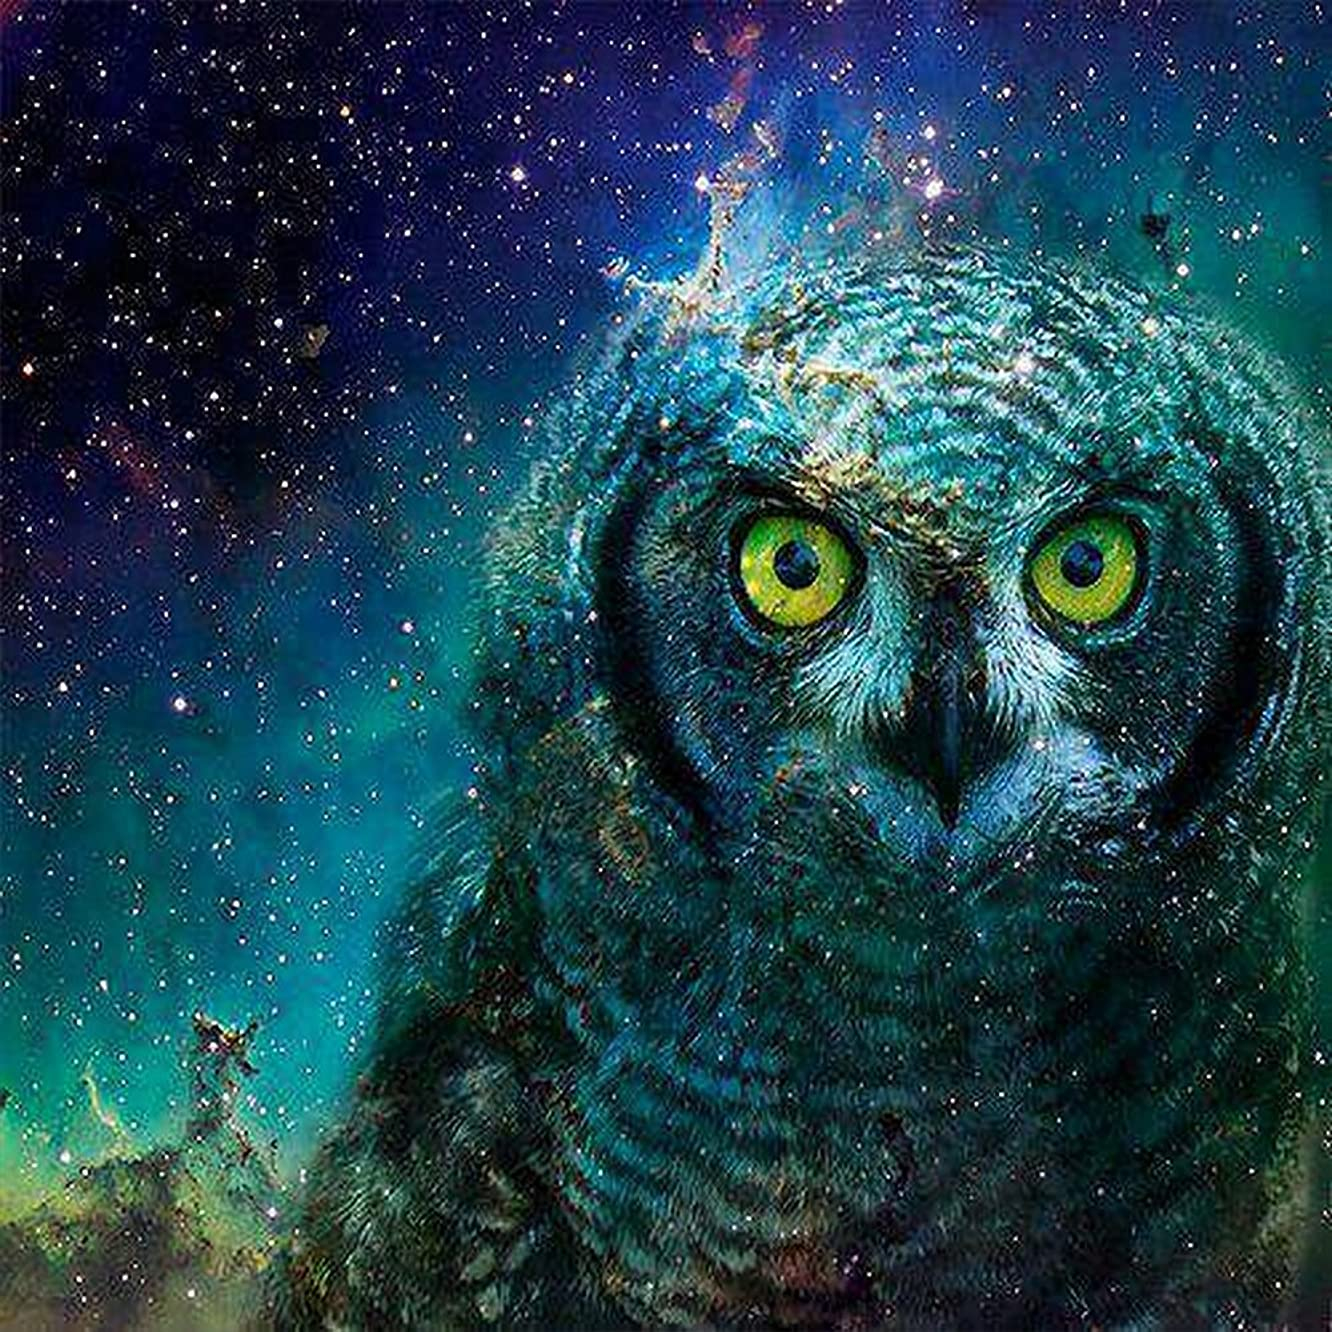 Orsit DIY 5D Diamond Painting Kit, Full Diamond Embroidery Cross Stitch Arts Craft Supply for Home Wall Decor 14X14 inches,owl